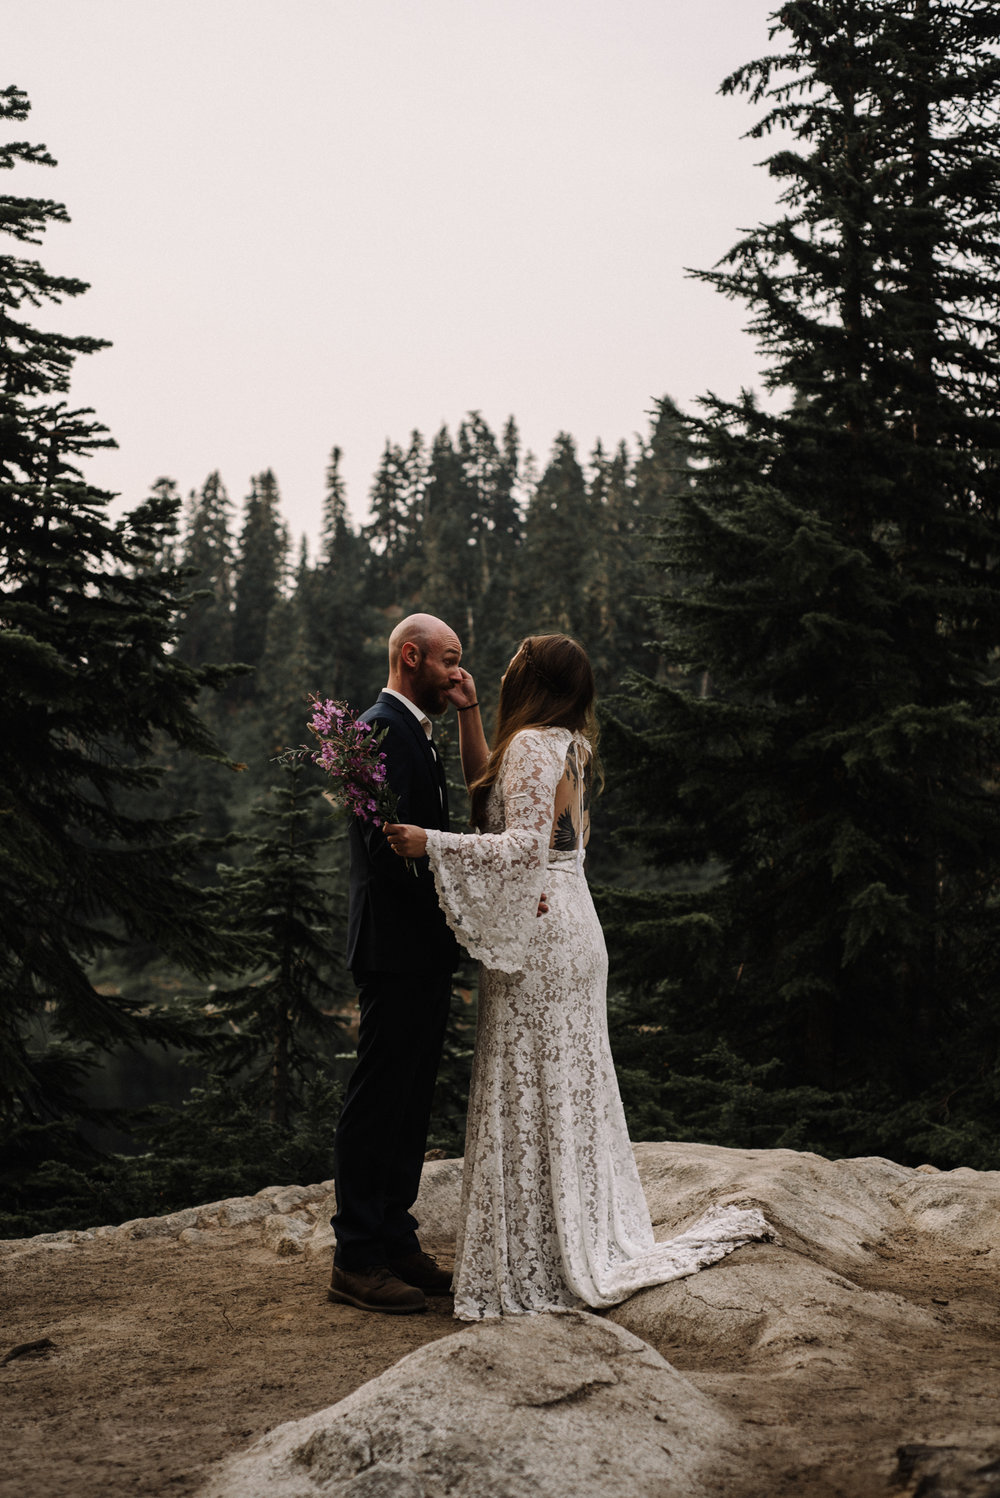 Megan and Andrew Lake Valhalla Washington PNW Adventure Elopement White Sails Creative Sunrise Hike_54.JPG